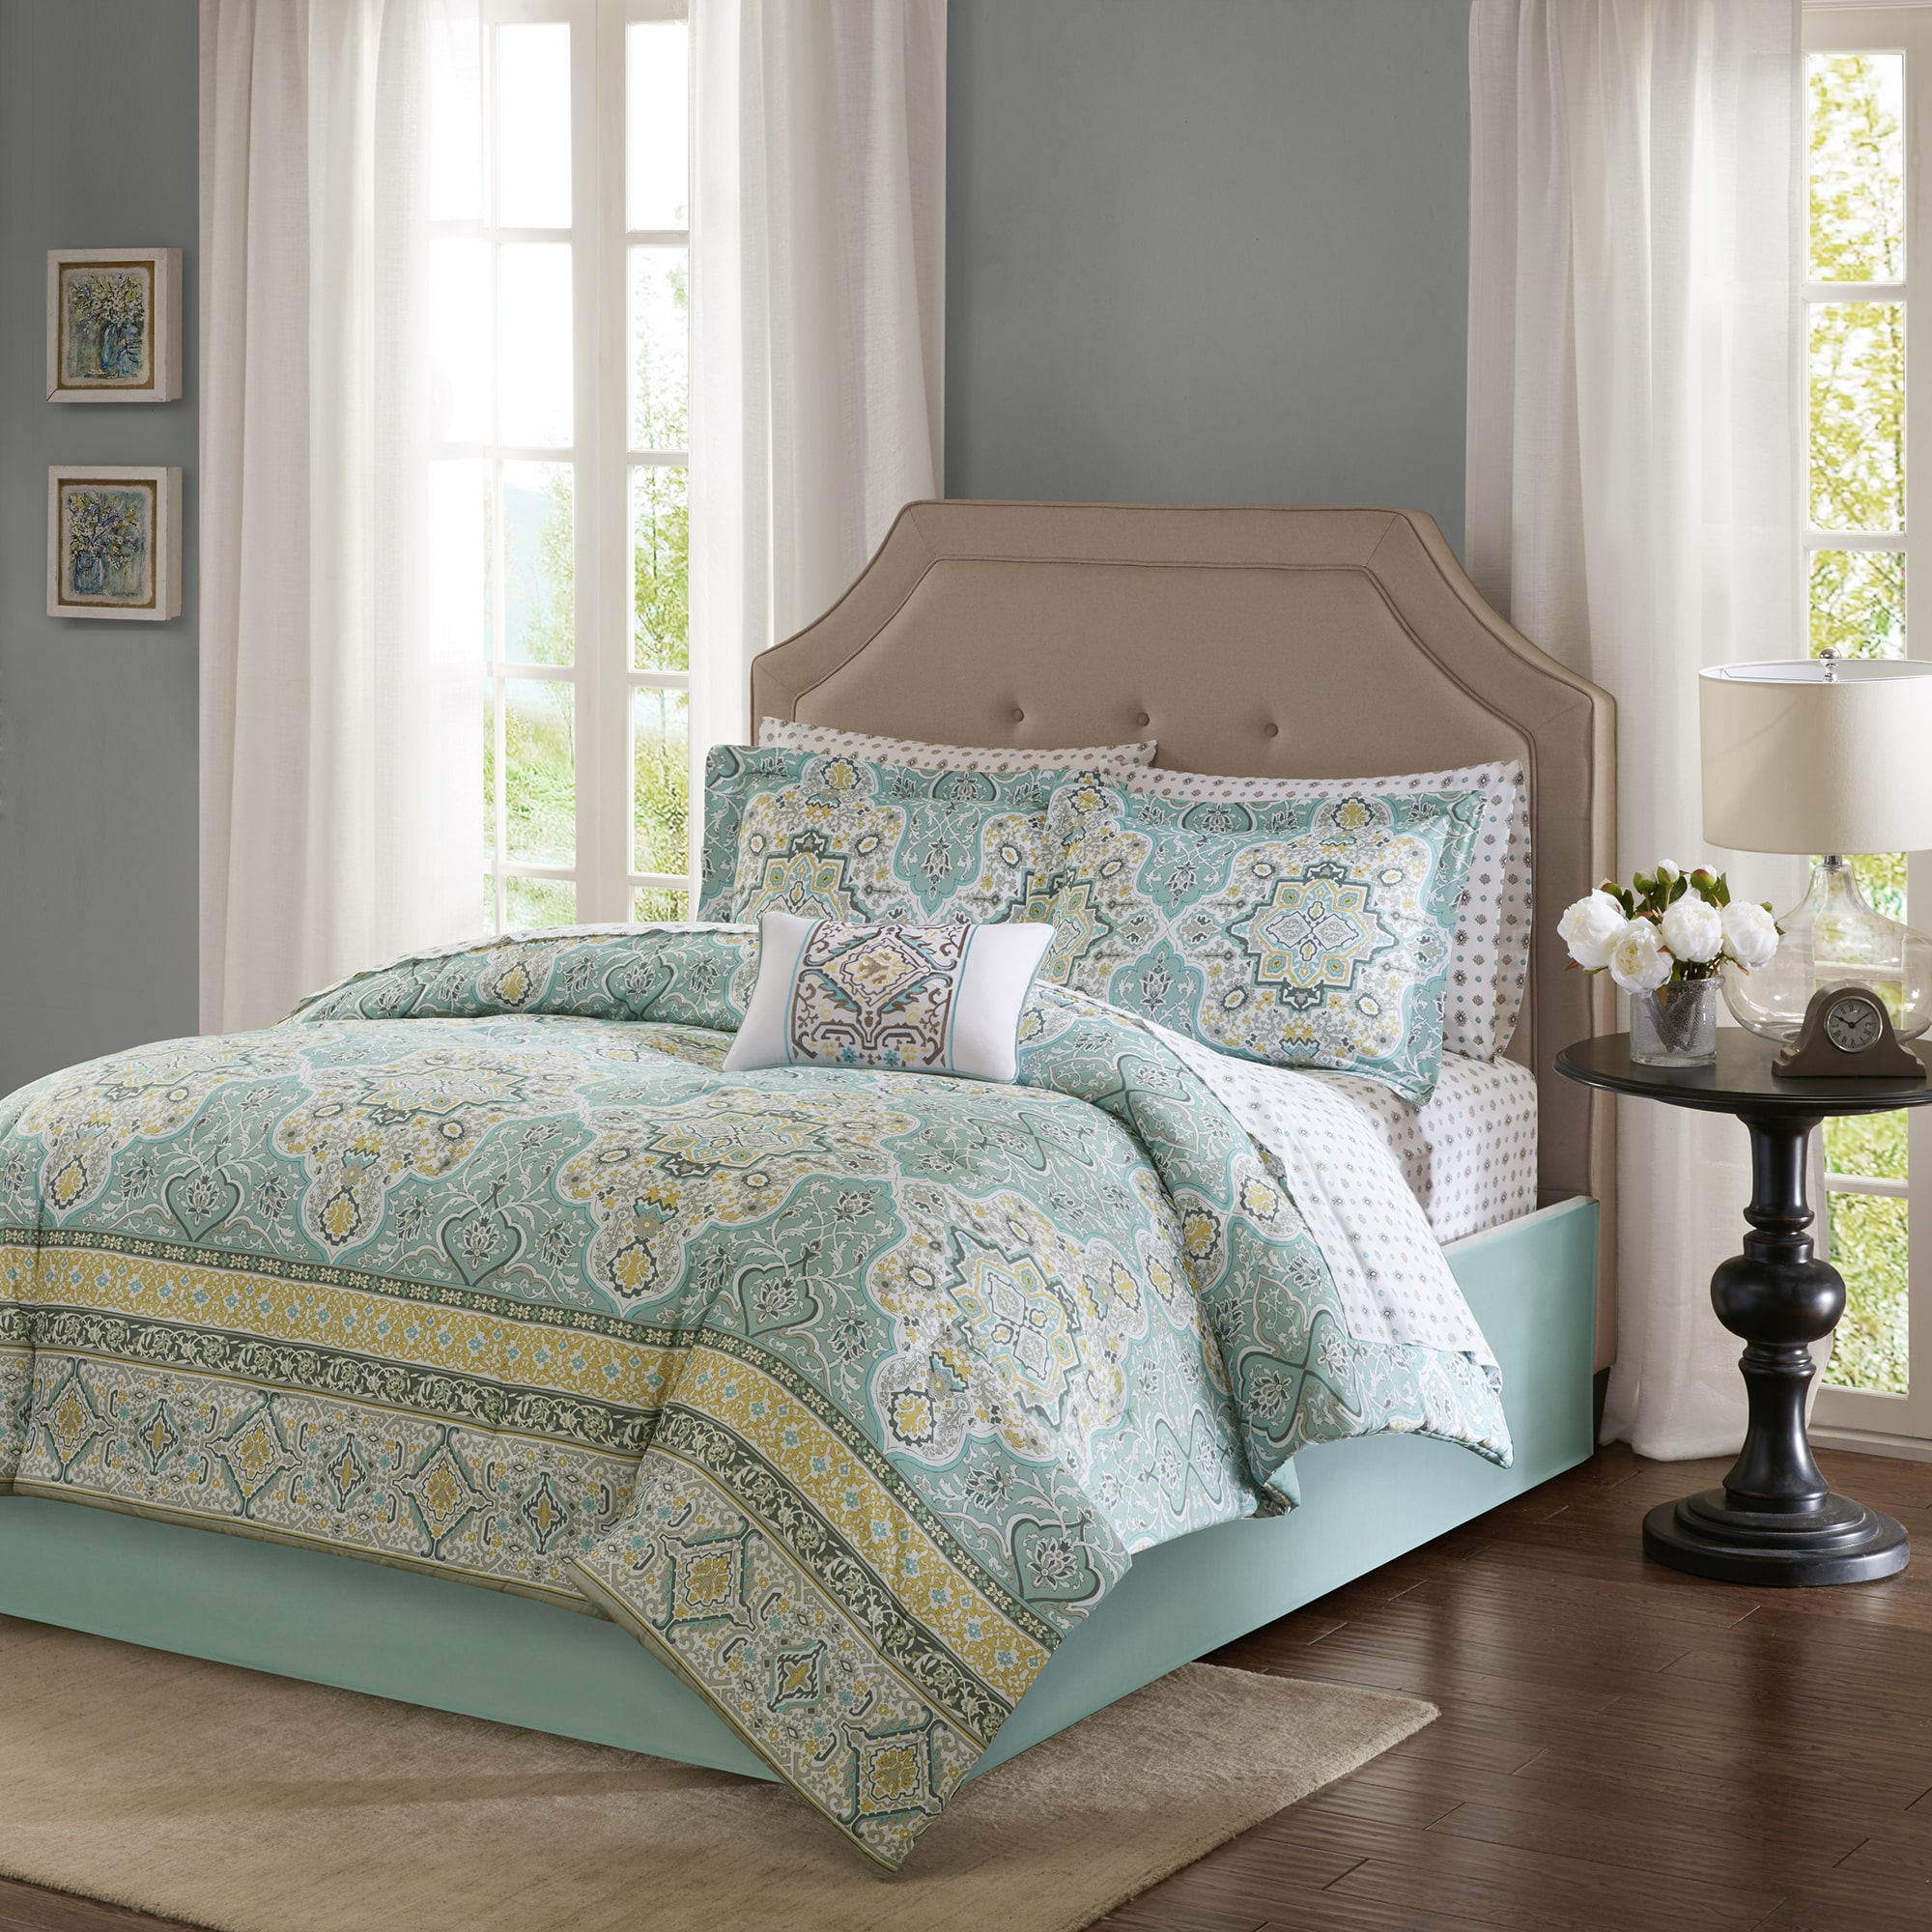 Home Essence Shannon Complete Comforter Set And Cotton Sheet Set